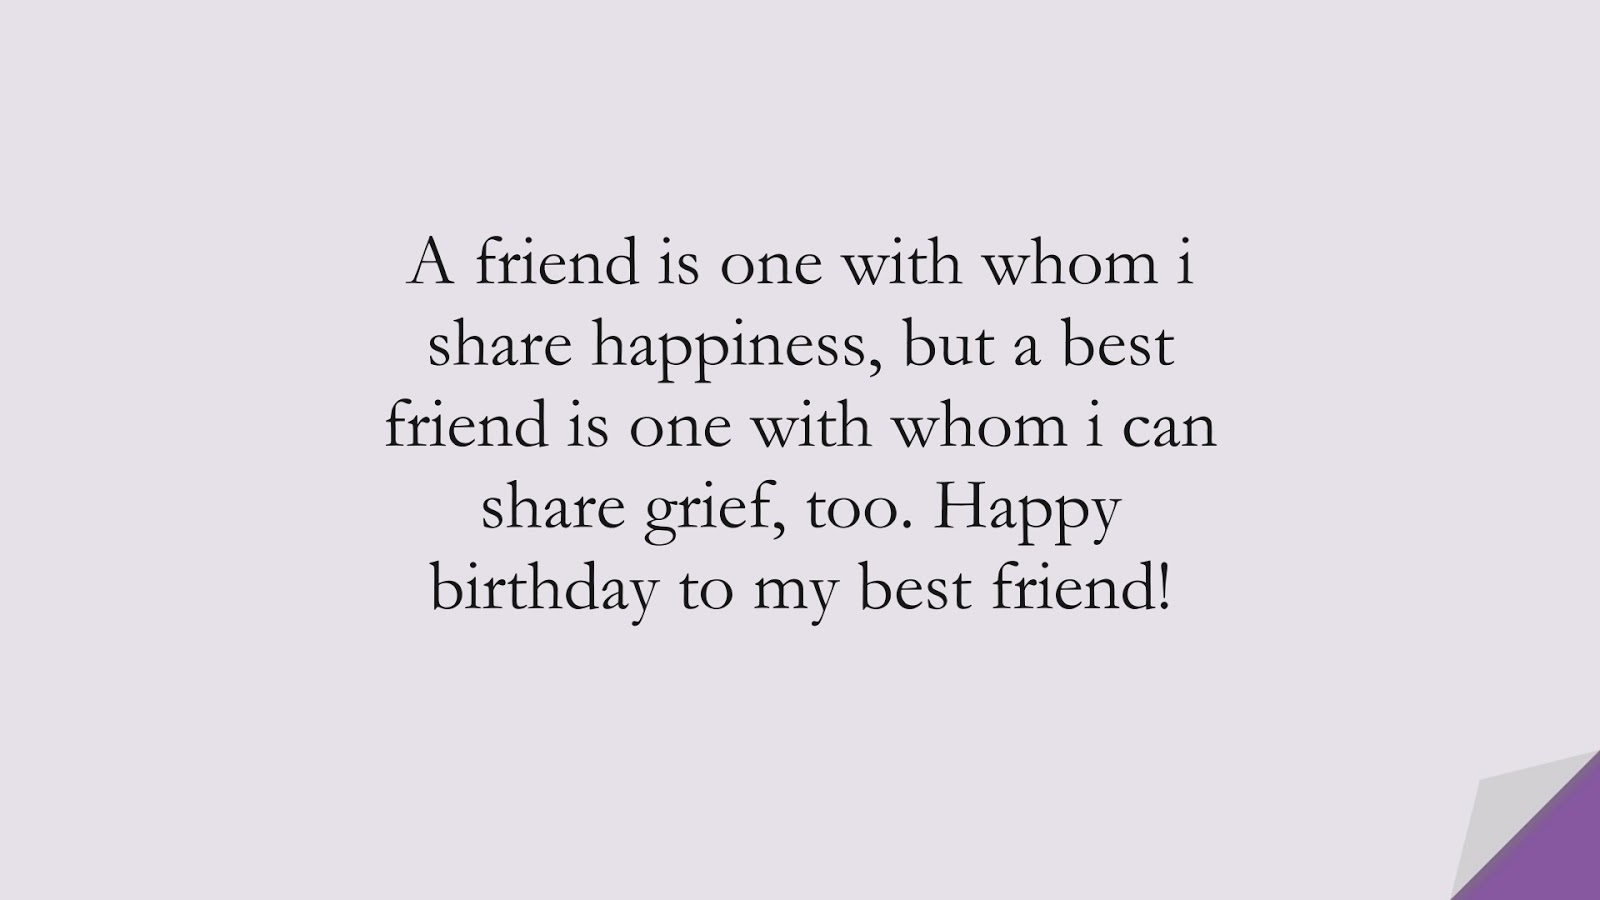 A friend is one with whom i share happiness, but a best friend is one with whom i can share grief, too. Happy birthday to my best friend!FALSE